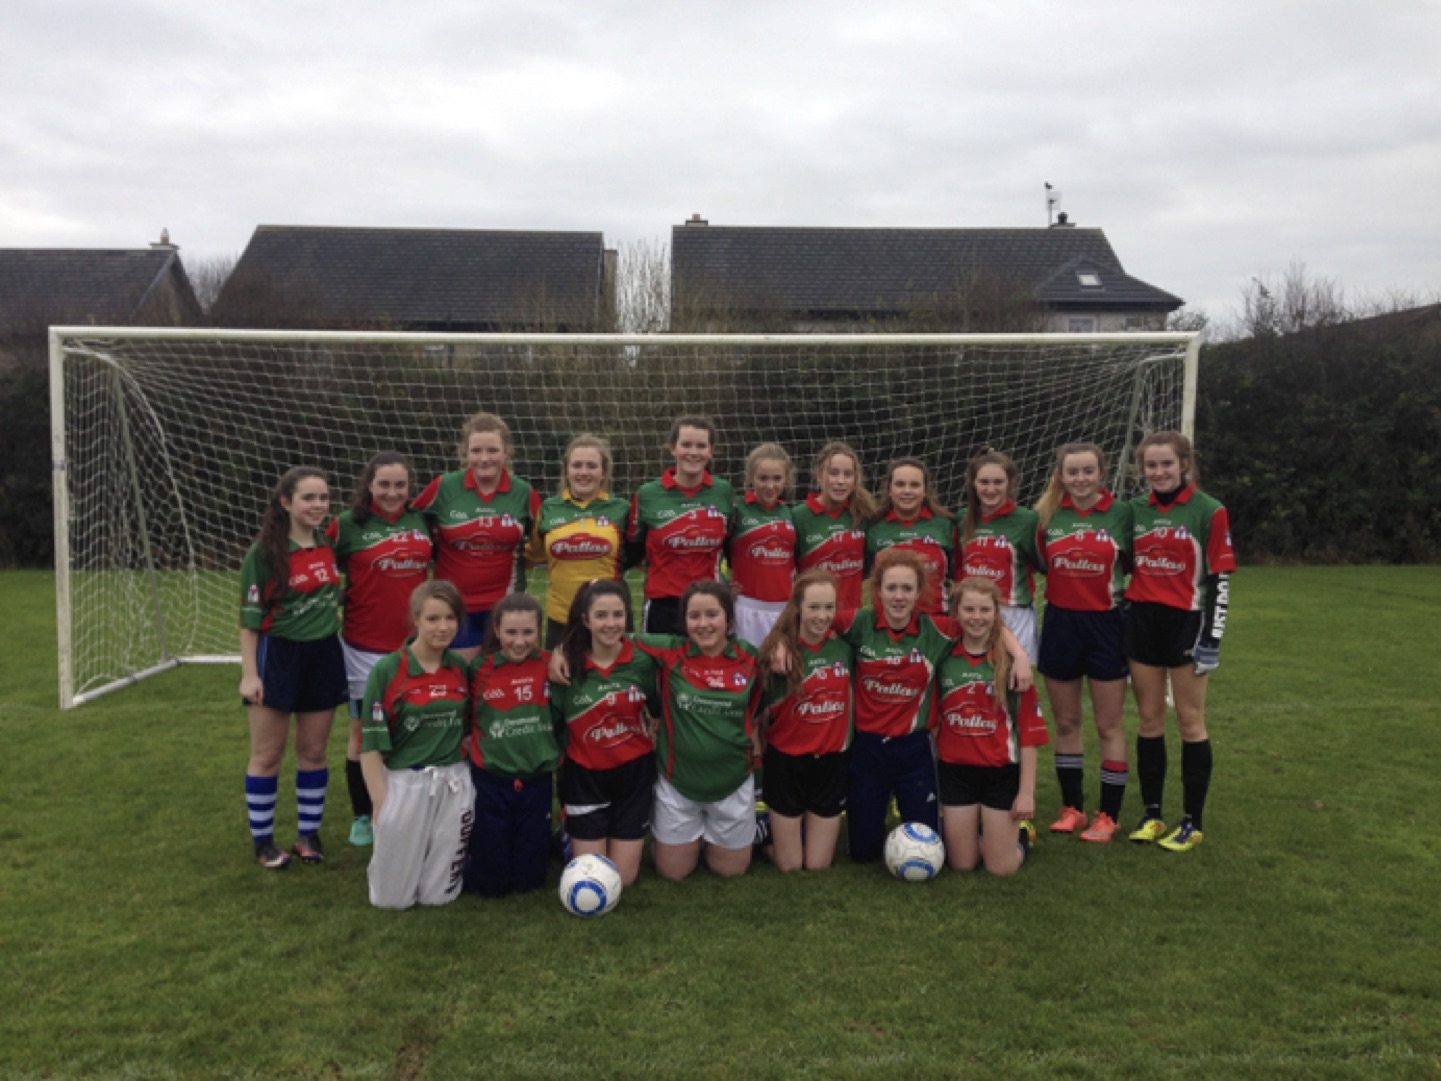 May 2017: Desmond College the Junior Shannonside Soccer Champions!